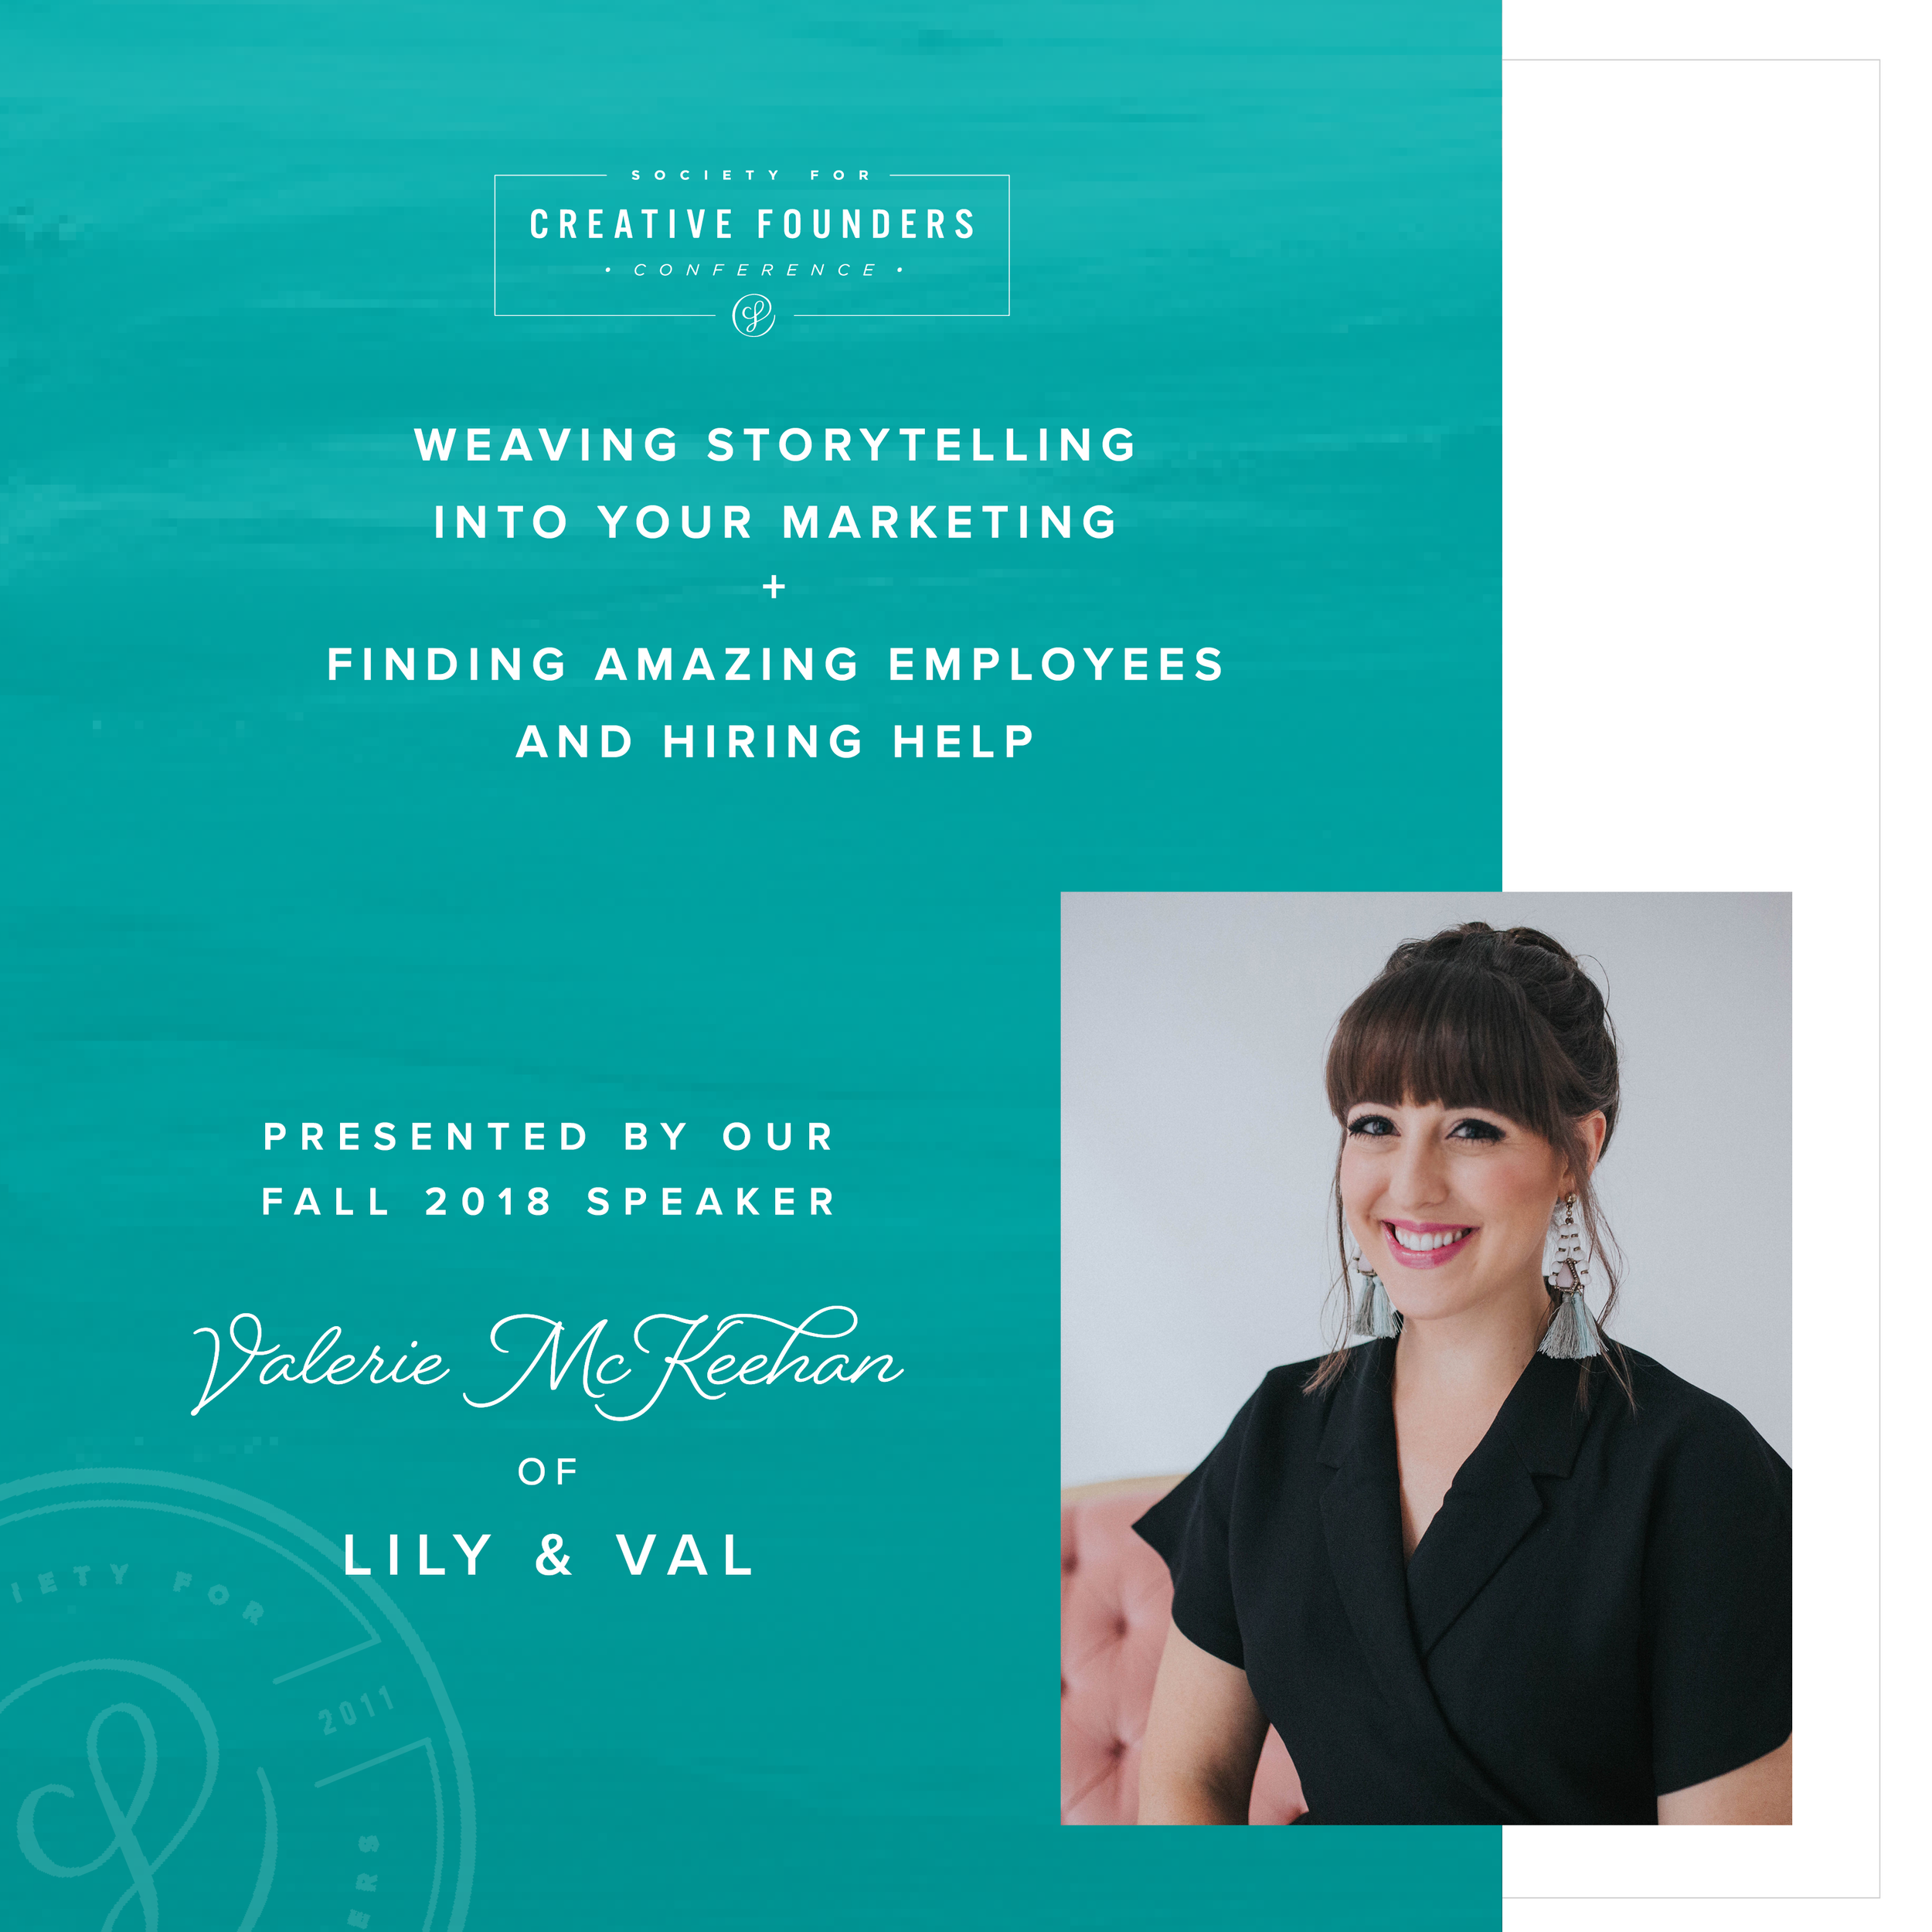 2018 Creative Founders Conference Speaker Valerie McKeehan of Lily and Val